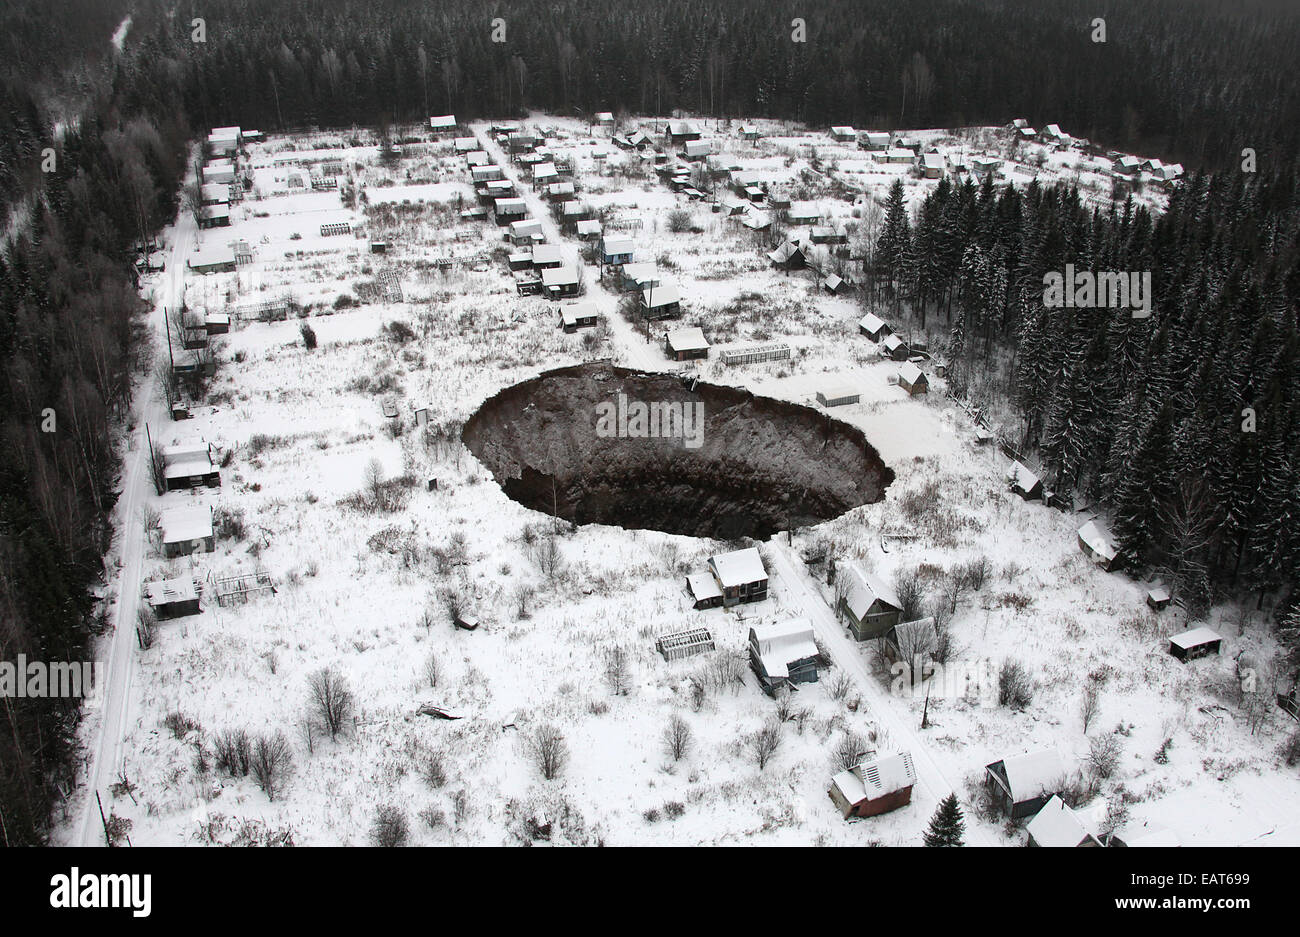 Perm Territory, Russia. 20th Nov, 2014. A view of a sinkhole stretching 20 by 30 meters at the Solikamsk-2 mine. Stock Photo